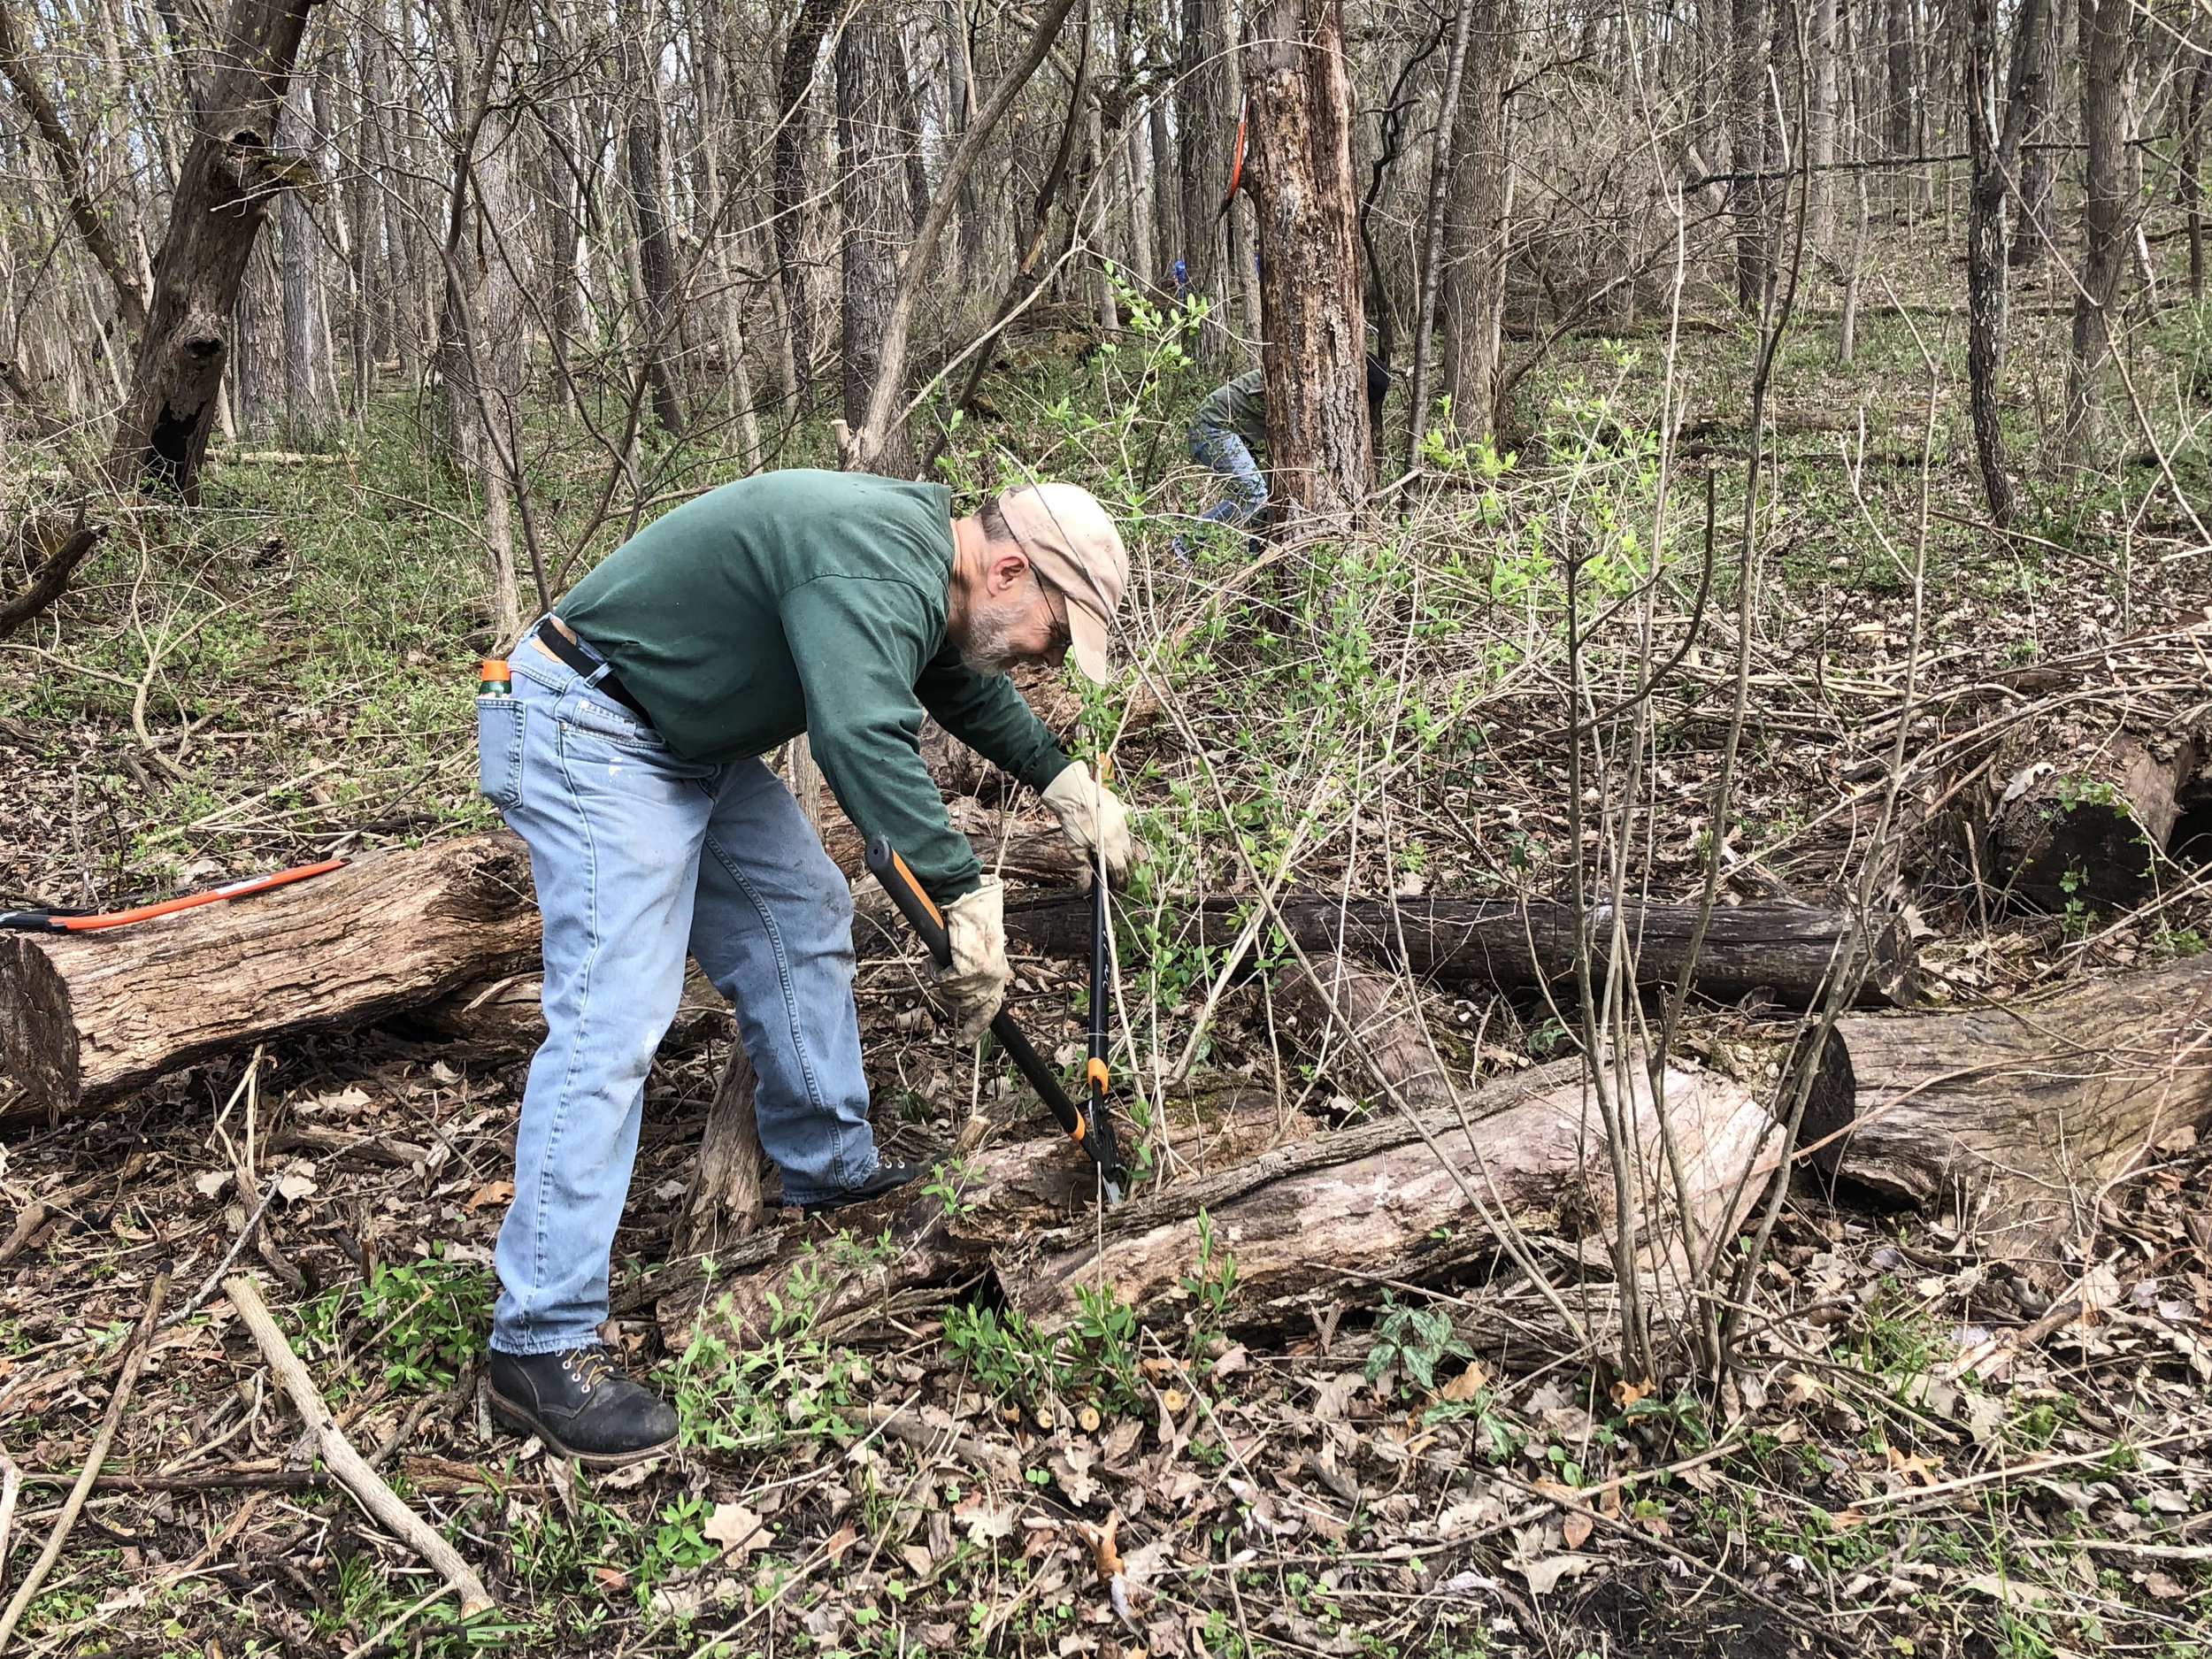 A volunteer cutting honeysuckle with loppers